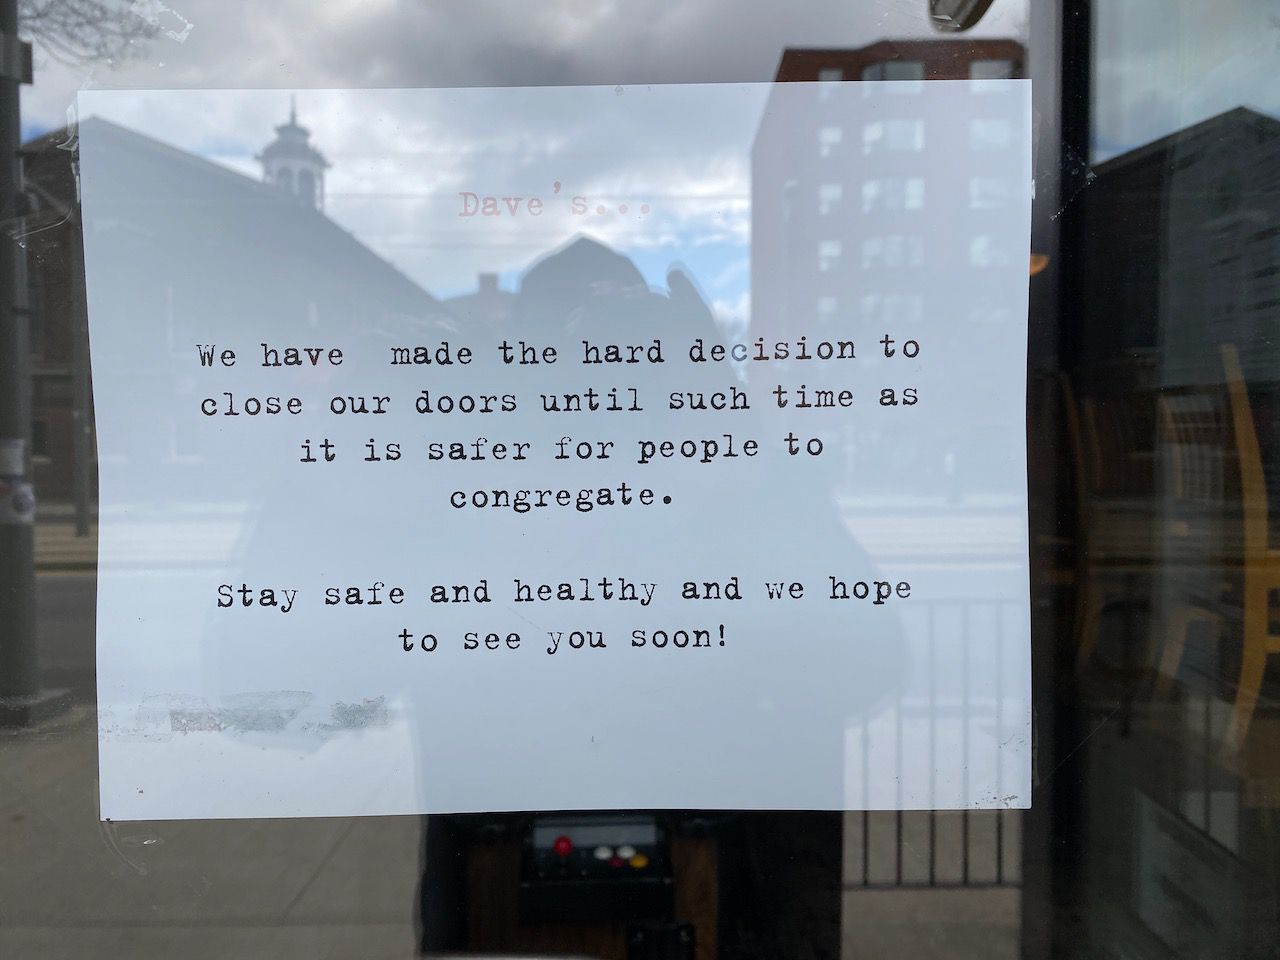 Dave's is closed